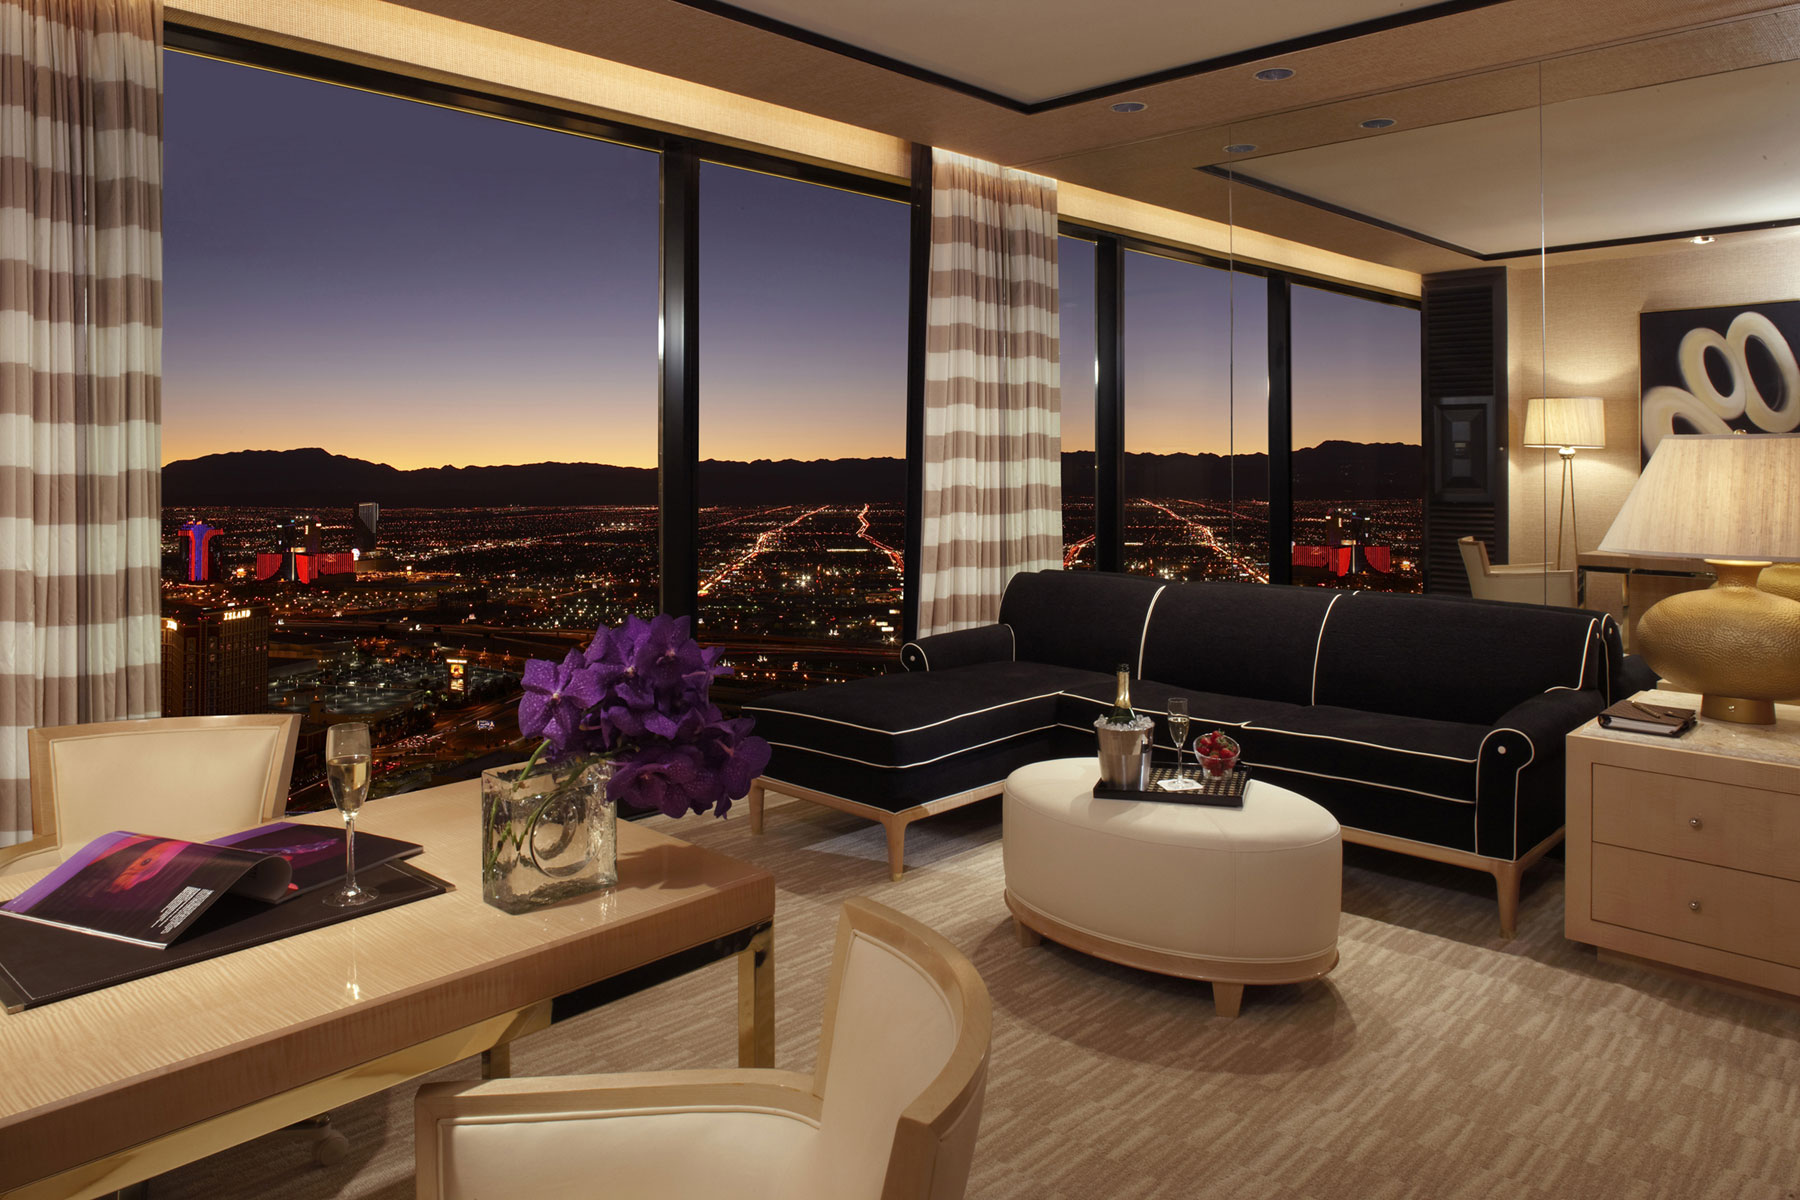 Las Vegas Hotels Suites 3 Bedroom The Best Vegas Rooms With A View Las Vegas Blogs